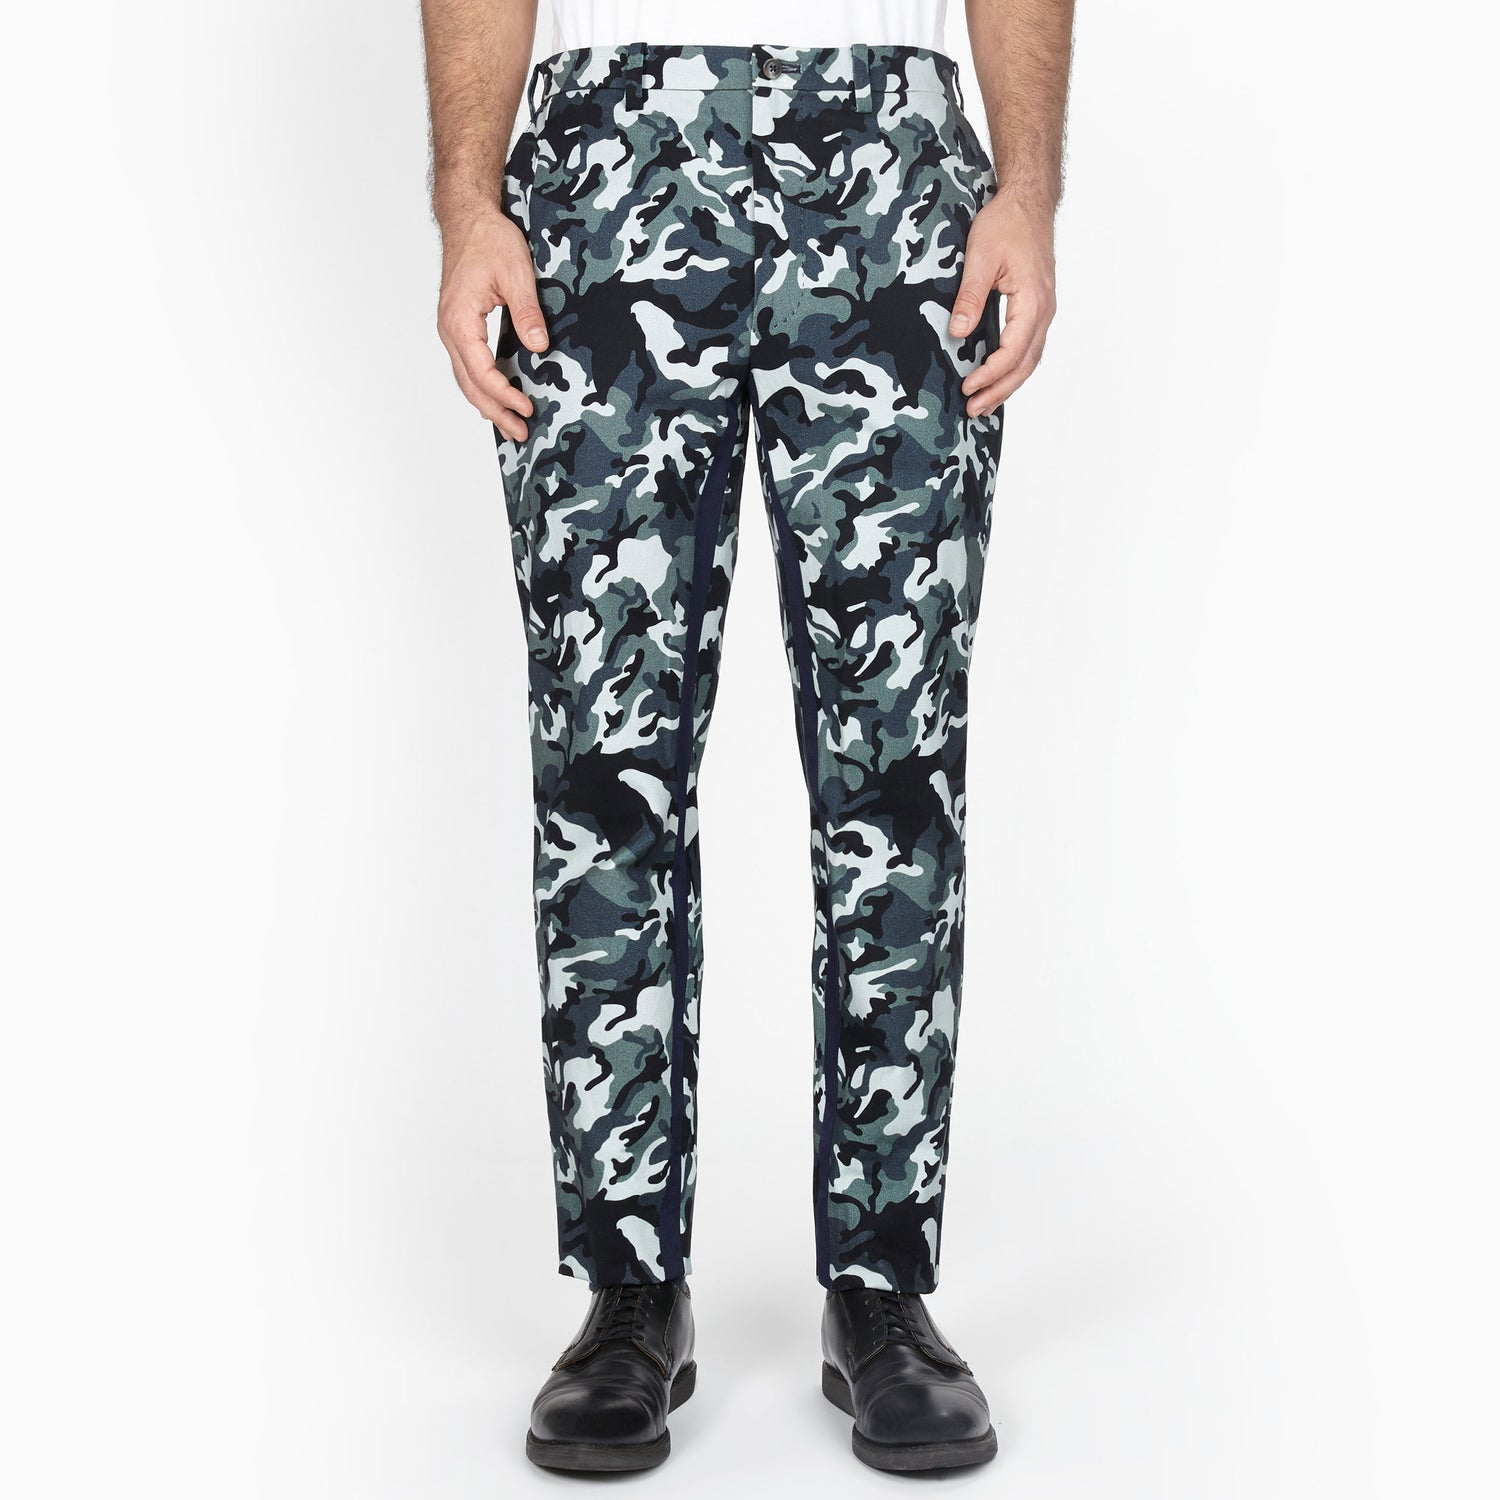 The Greek Army Special Forces Camouflage Trouser